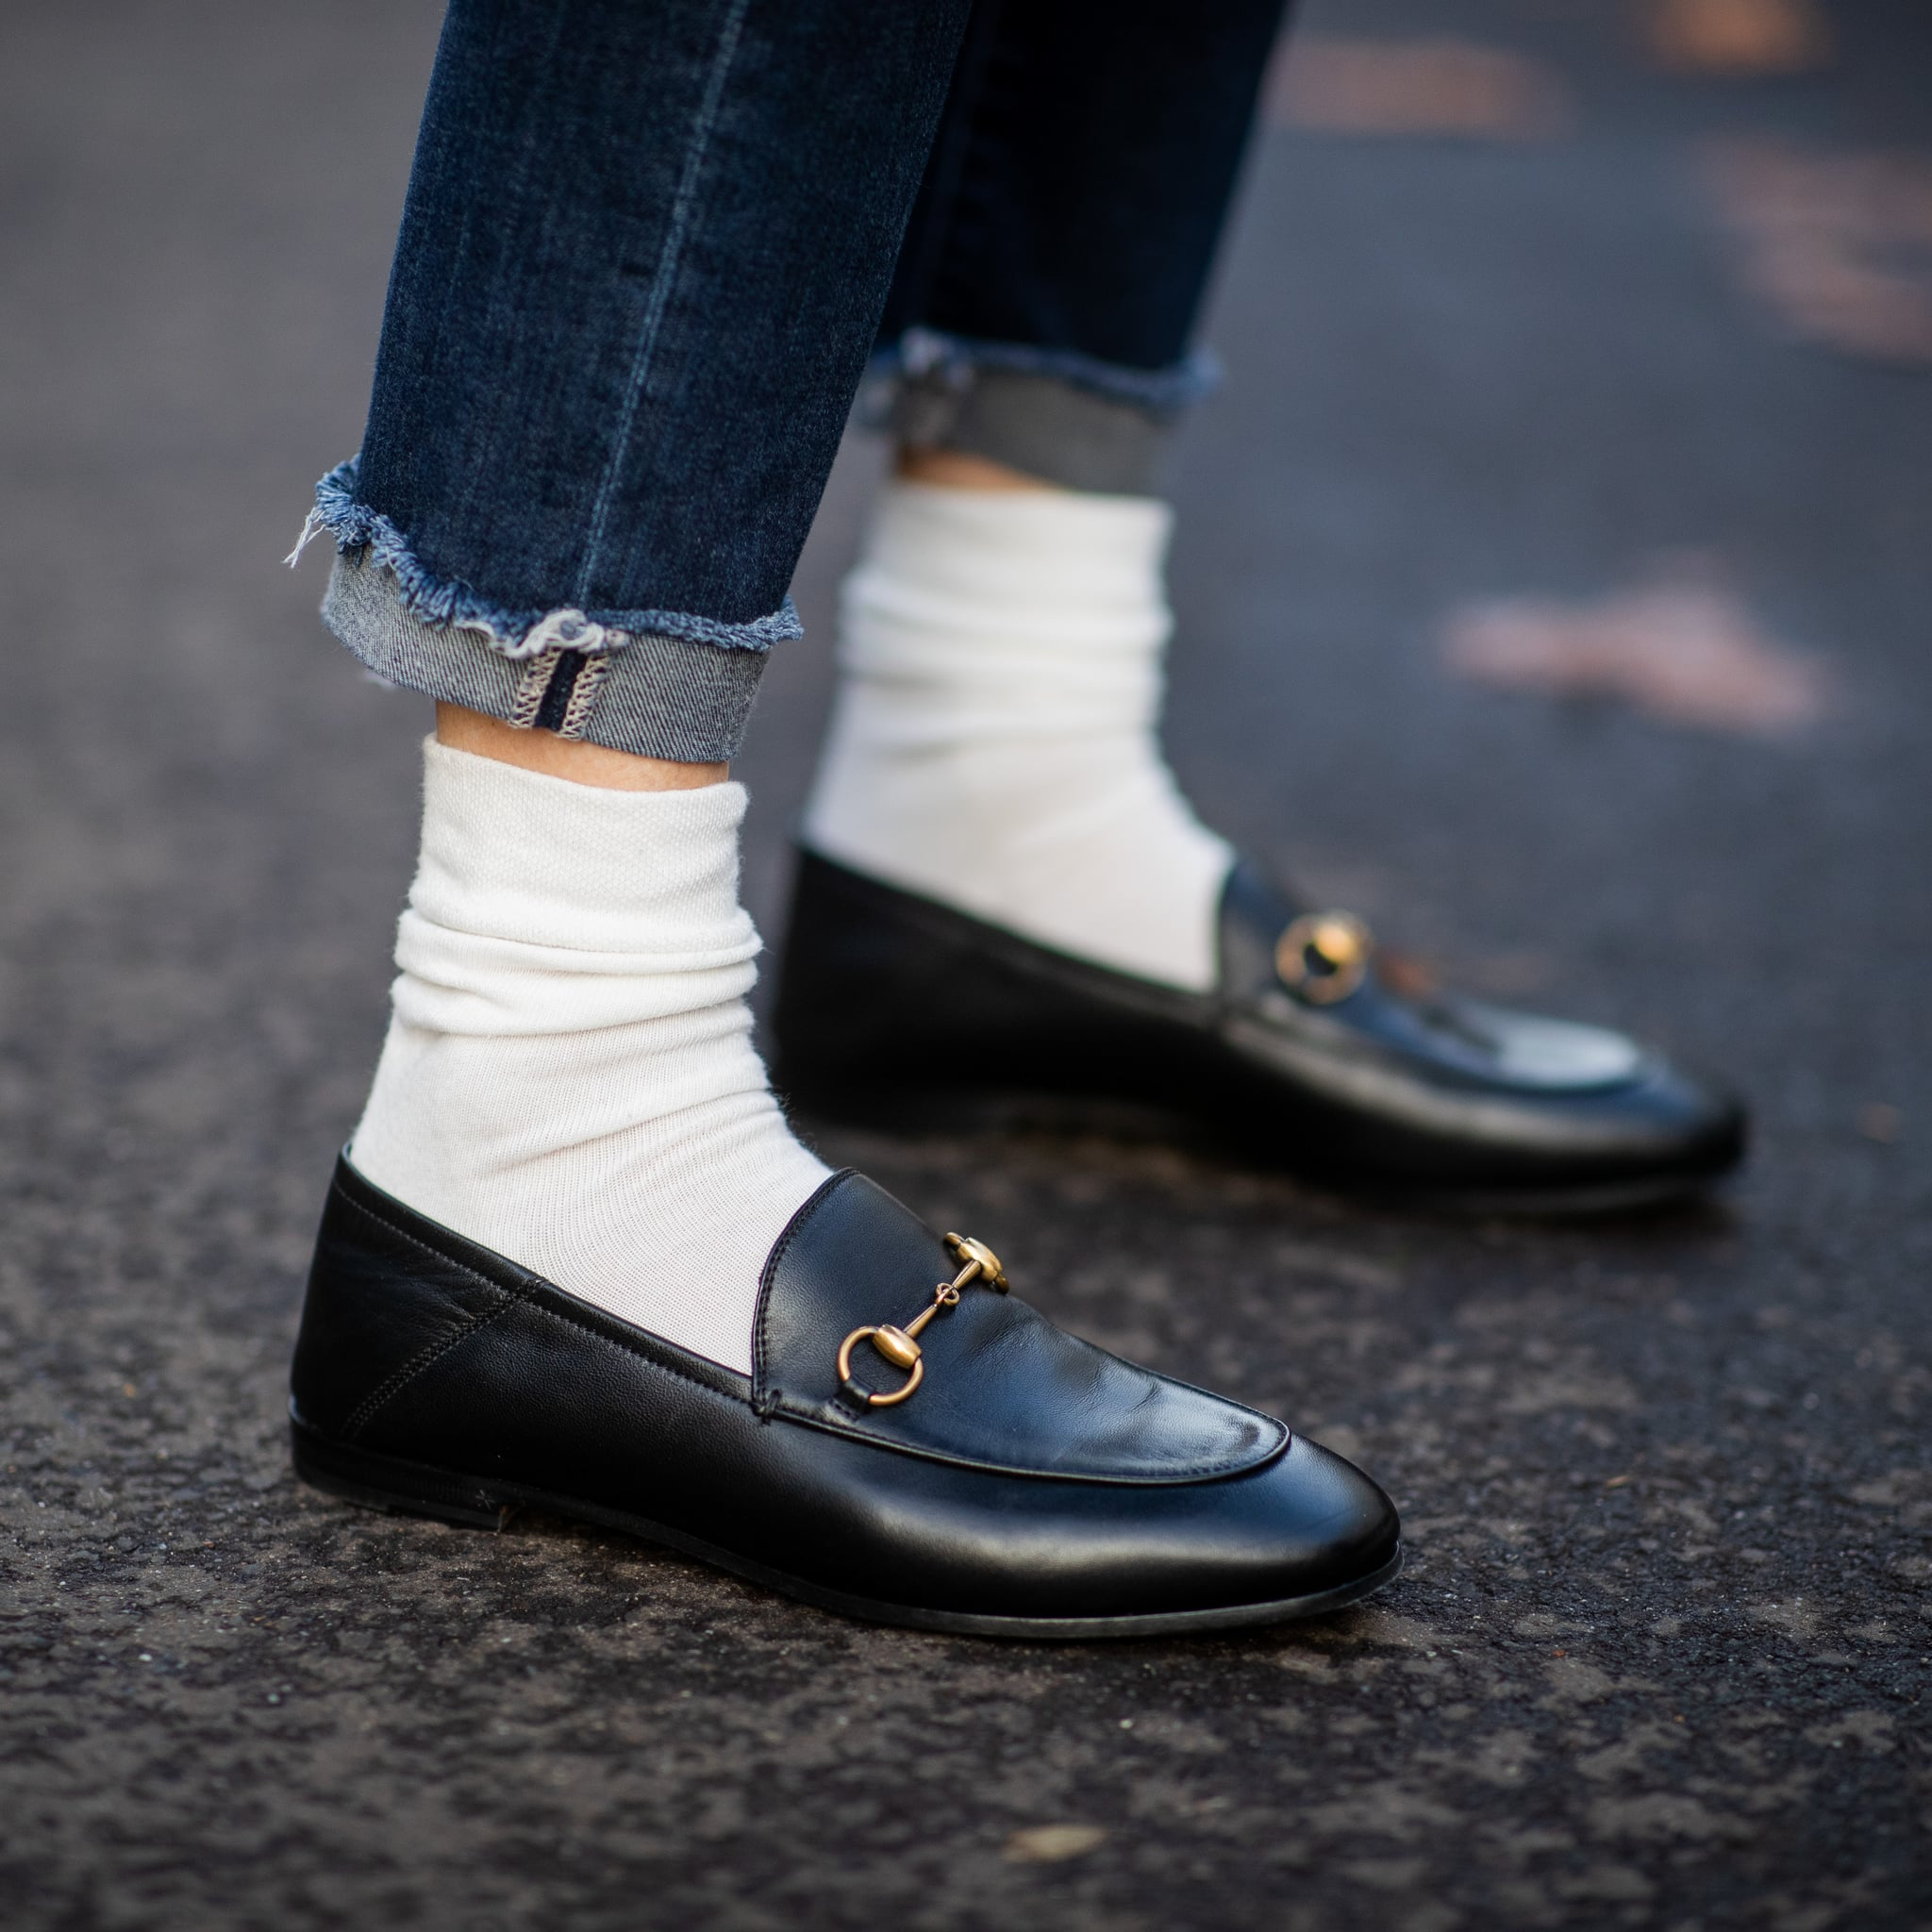 How To Style Gucci Loafers For Women 2020 Popsugar Fashion